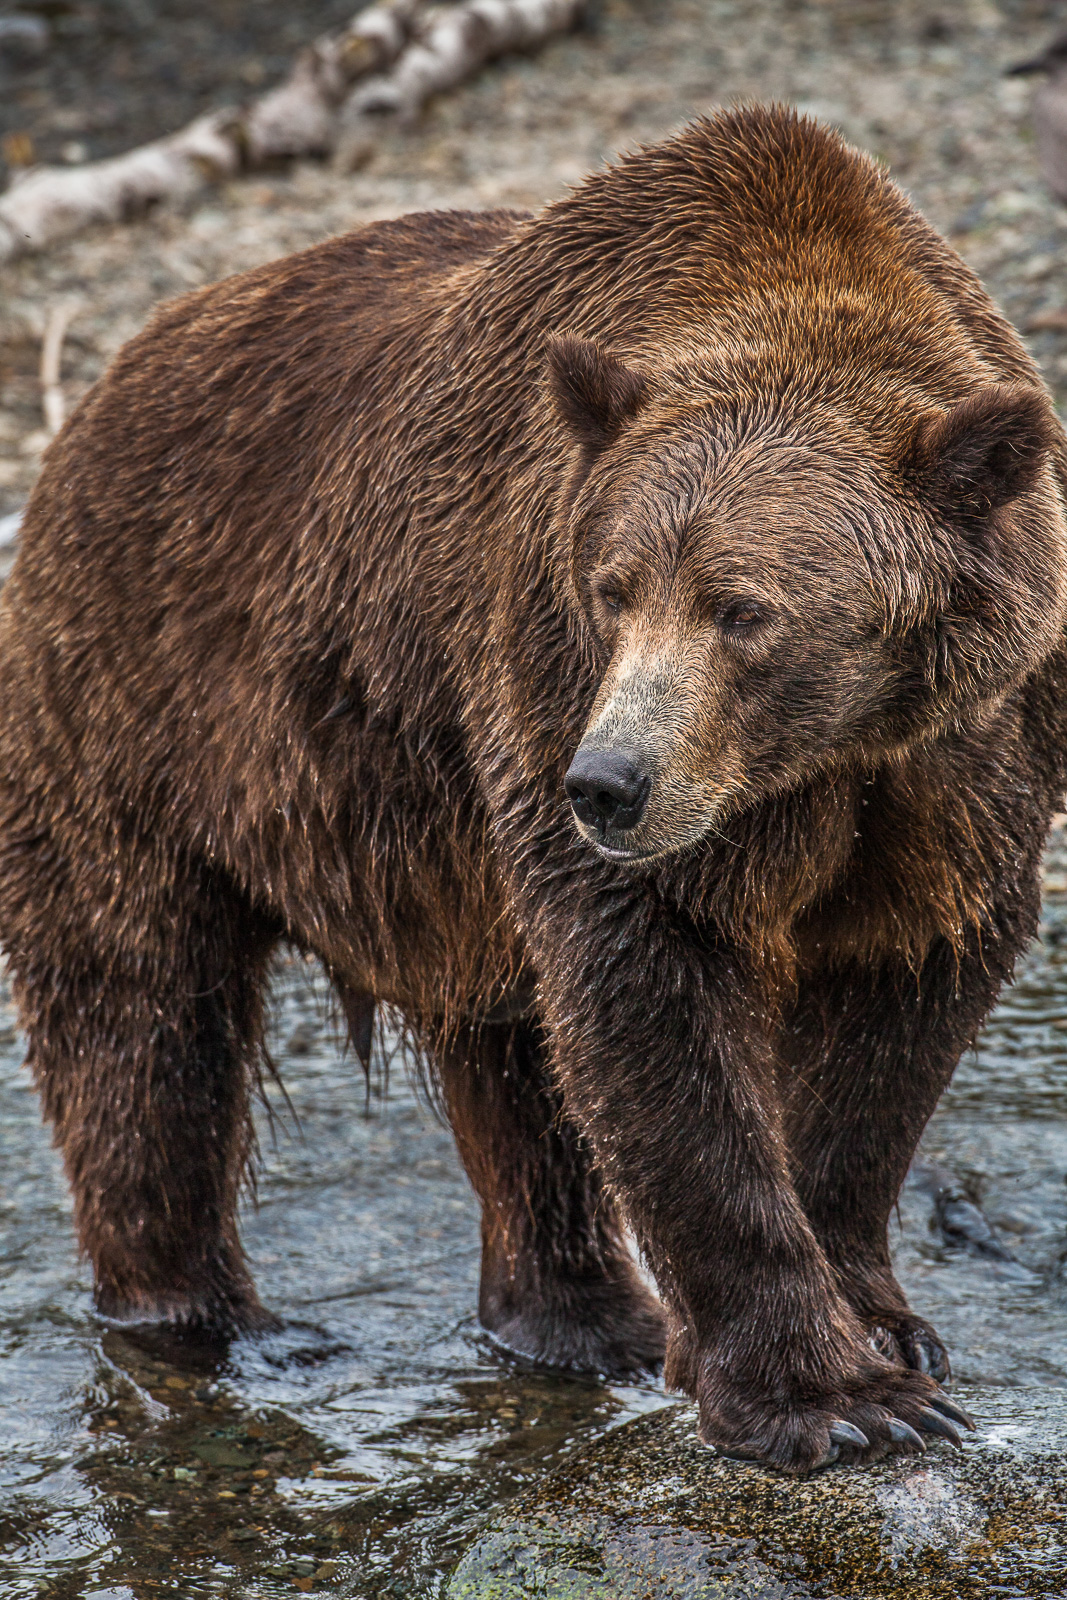 Griz,Fall,Grizzly,Wildlife,river,water,fishing,winter,vertical, bear, photo